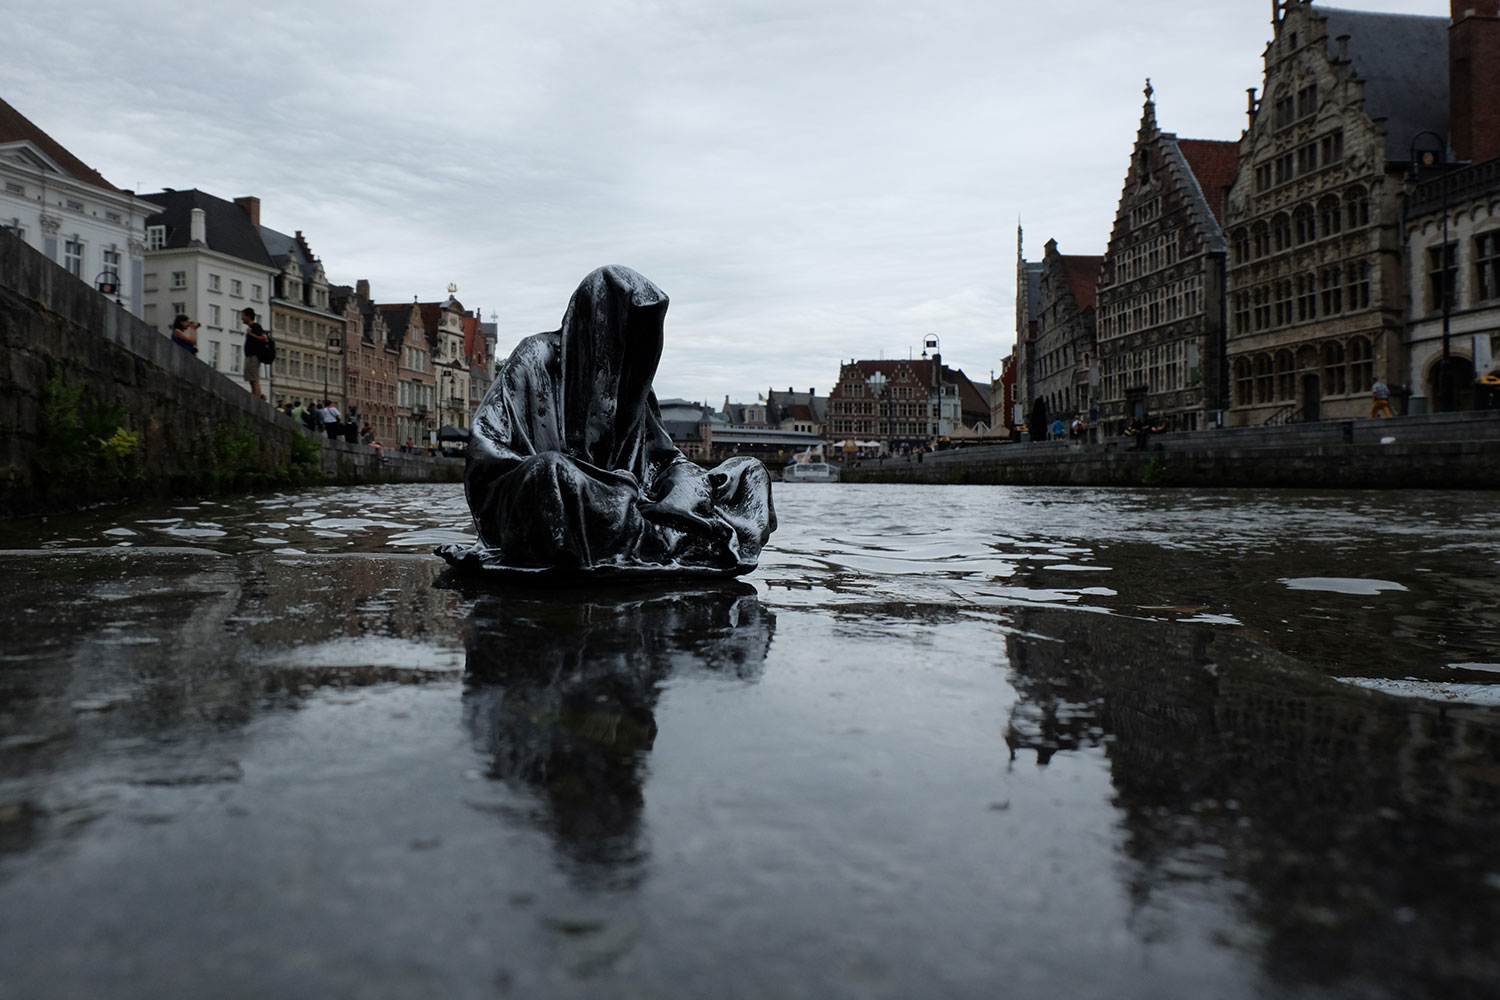 guardians-of-time-manfred-kili-kielnhofer-gent-belgium-contemporary-art-arts-design-sculpture-5236